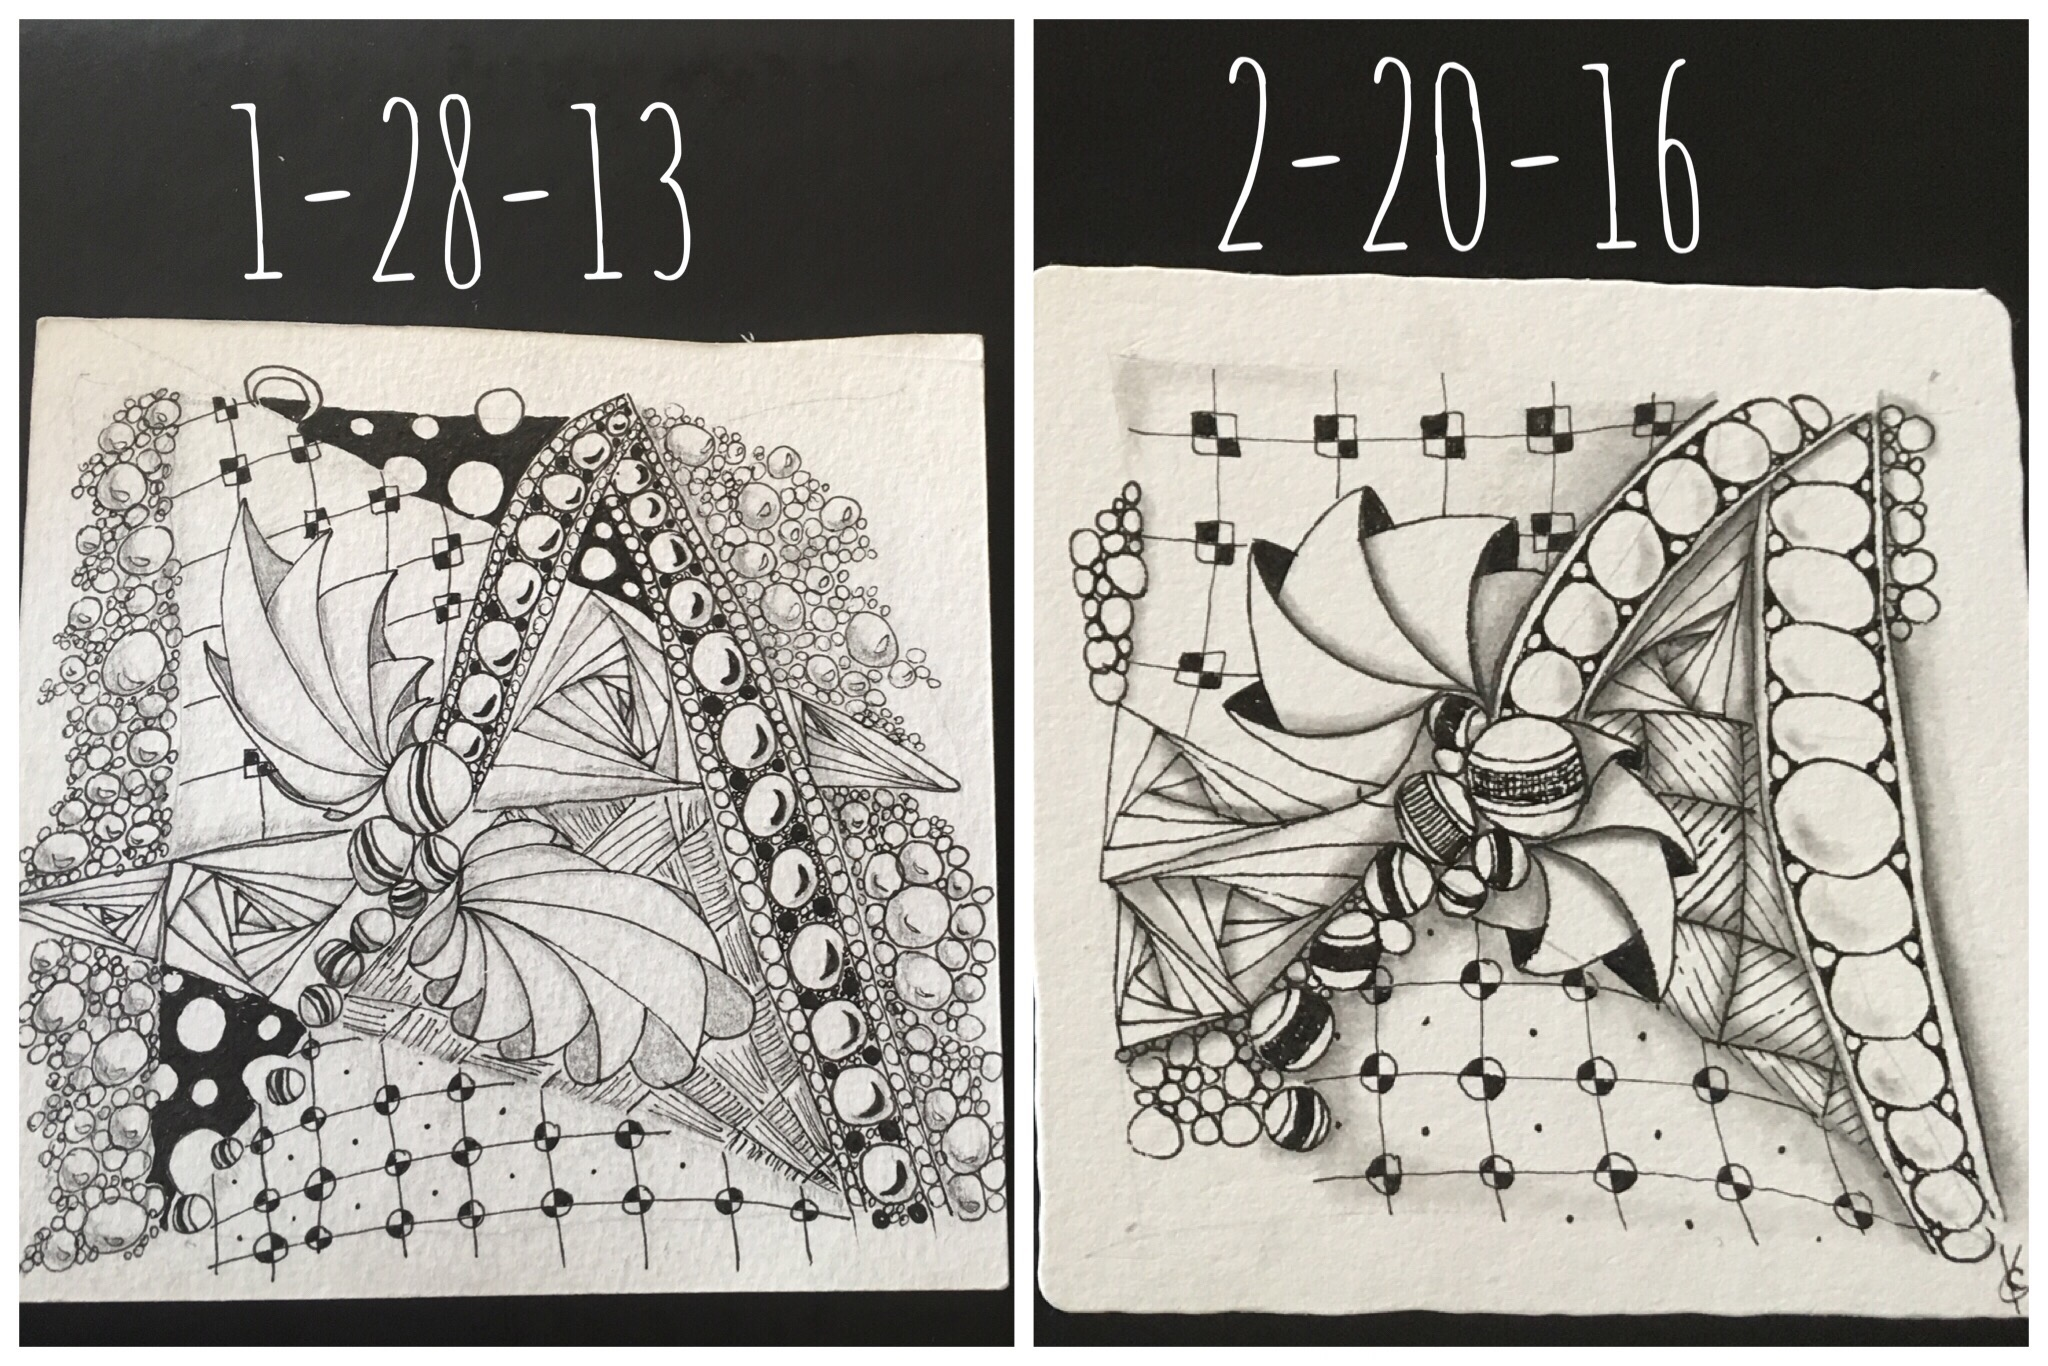 zentangle tiles comparison